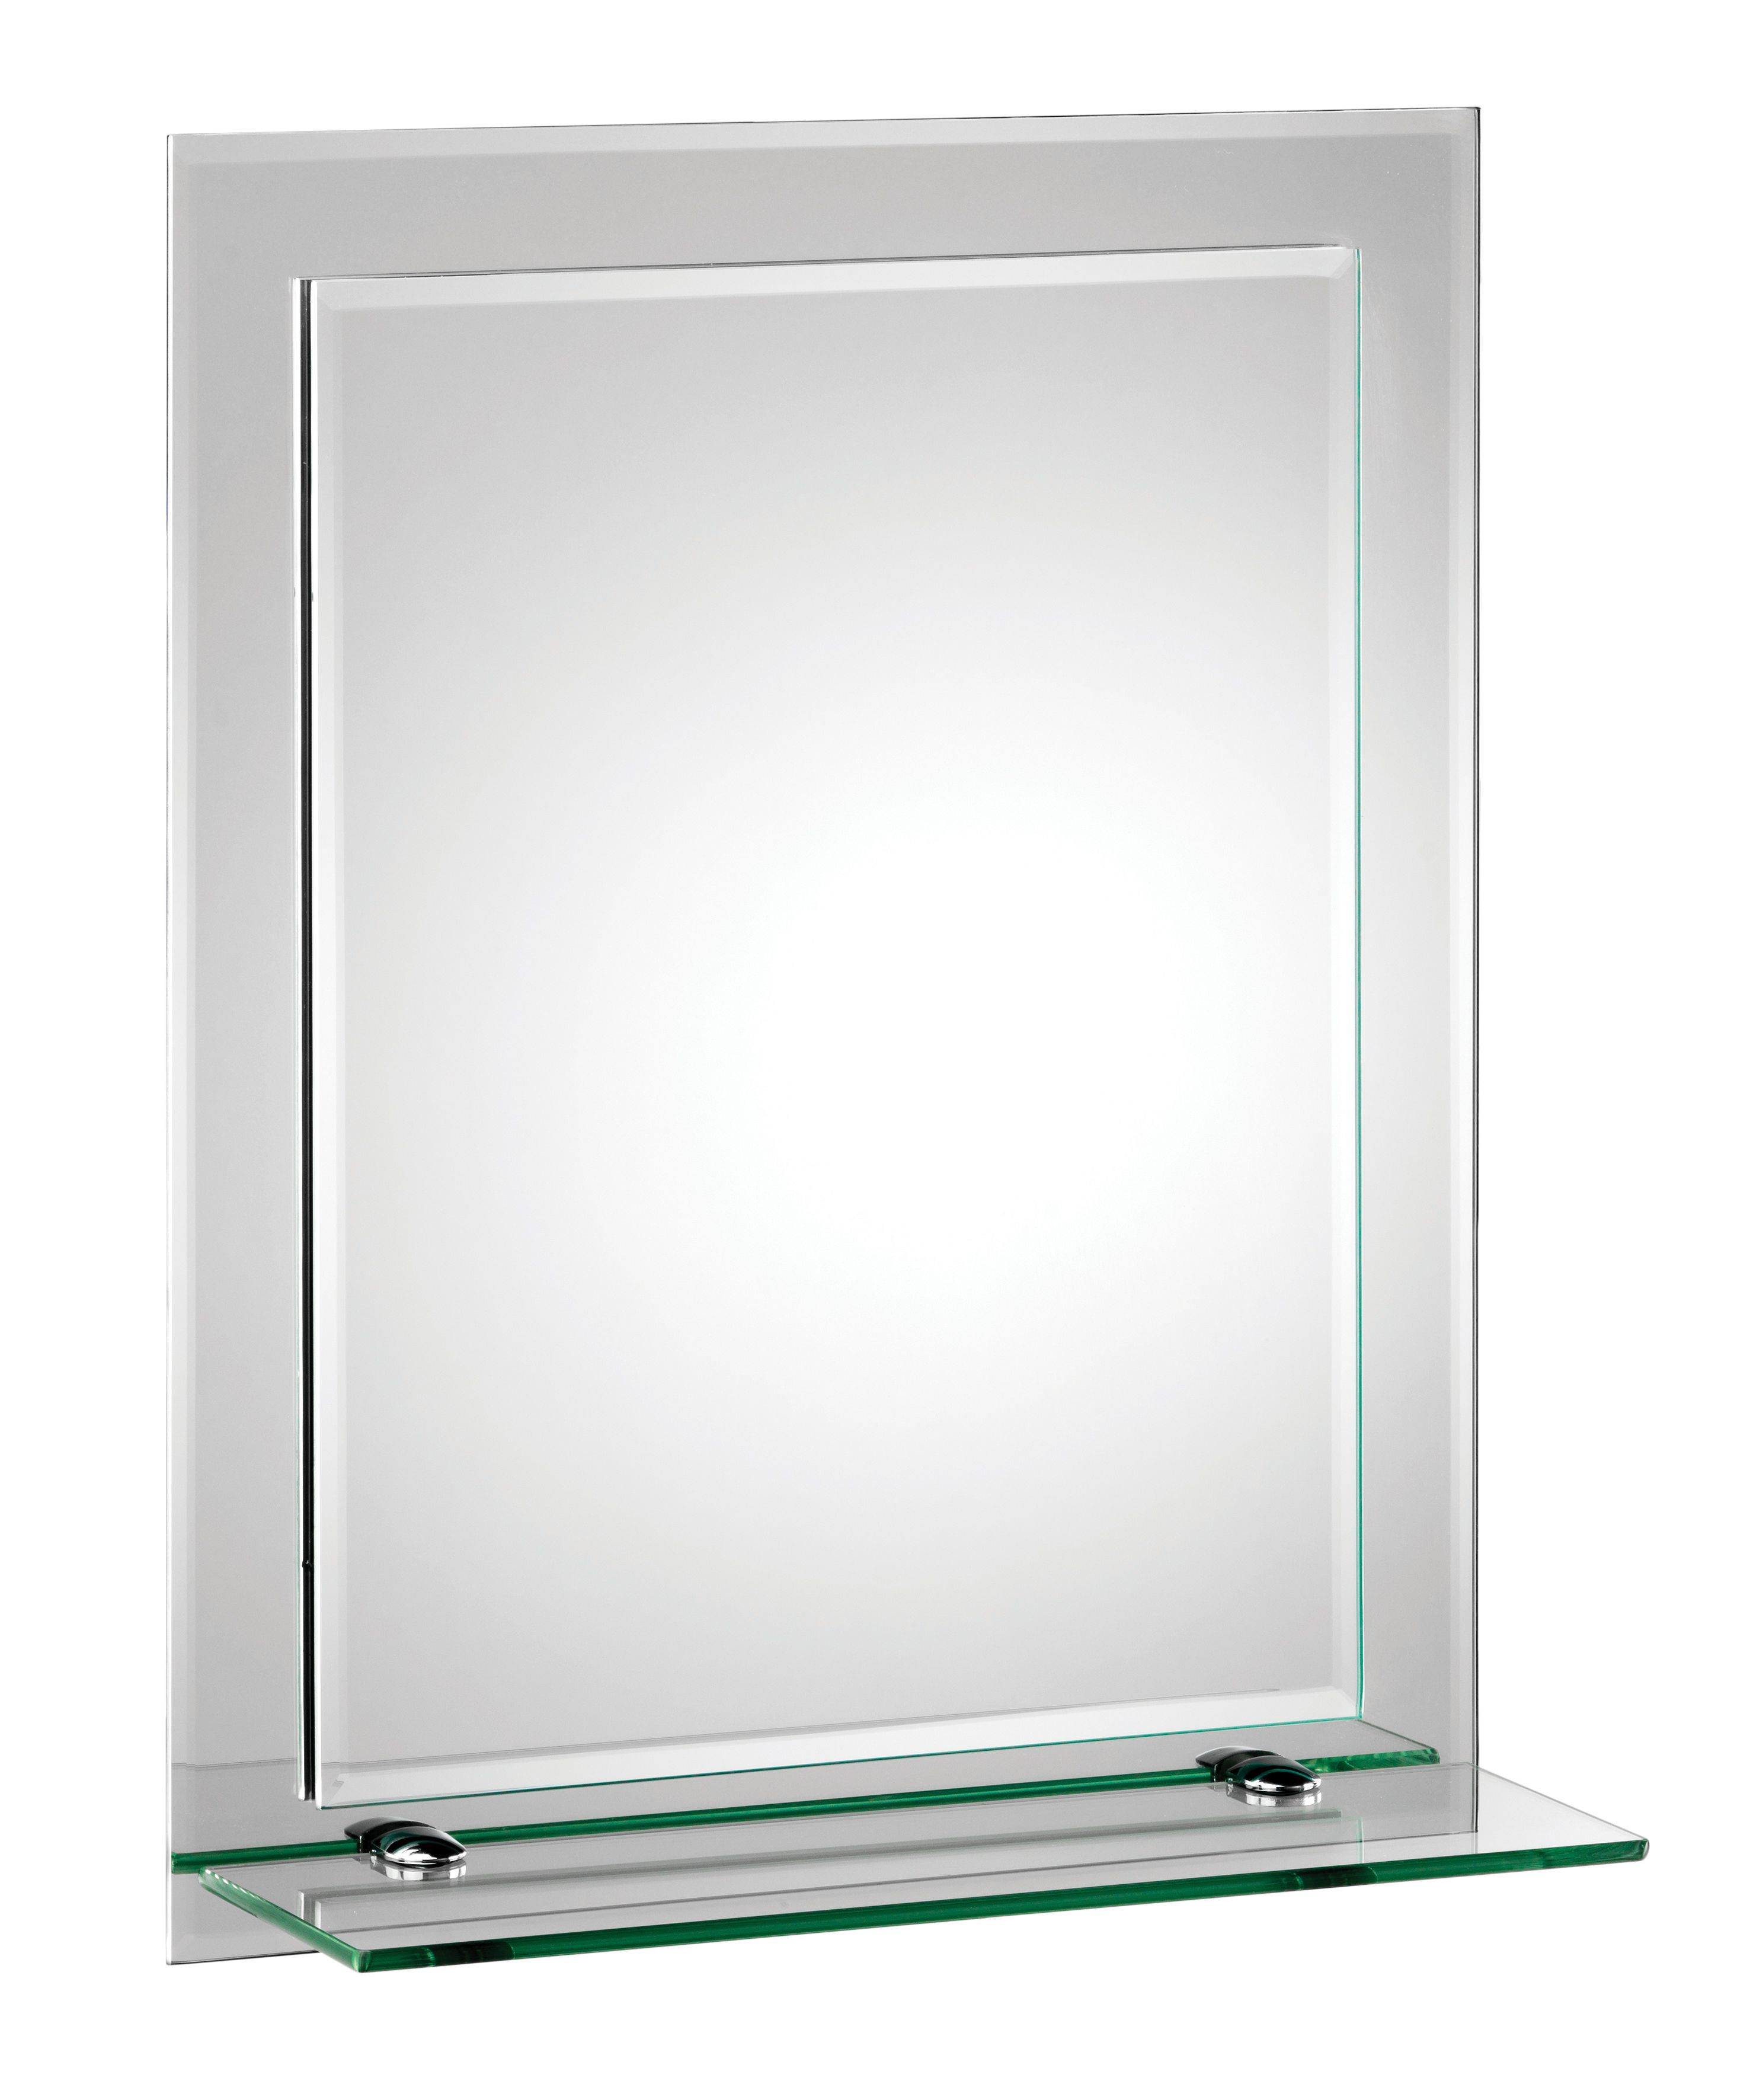 Indiana country rectangular swinging mirror